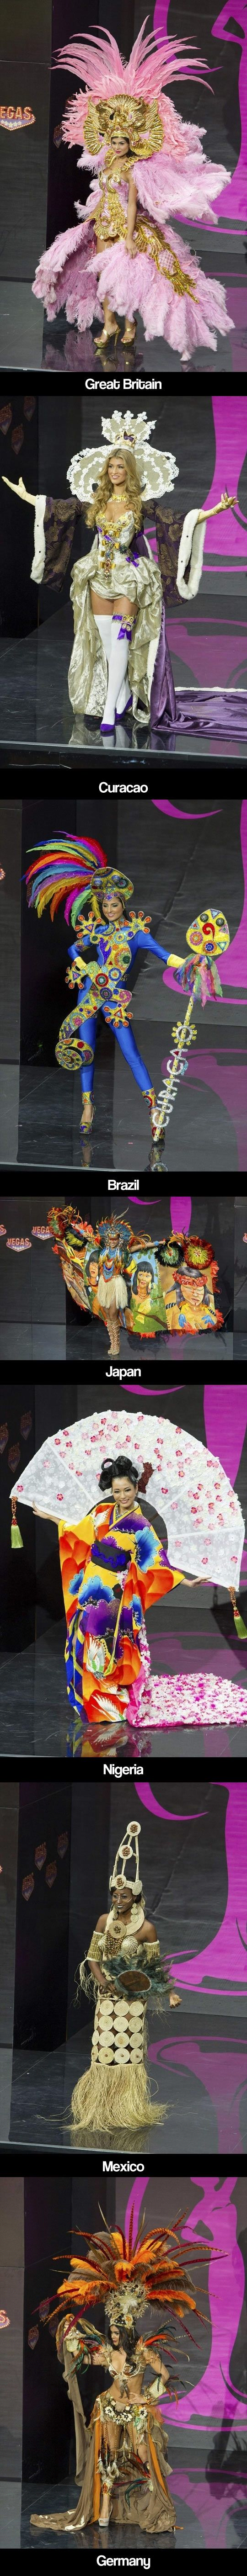 cool-Miss-Universe-National-costumes-Costa-Rica and more. But check out USA's... *facepalm...no...just...no.